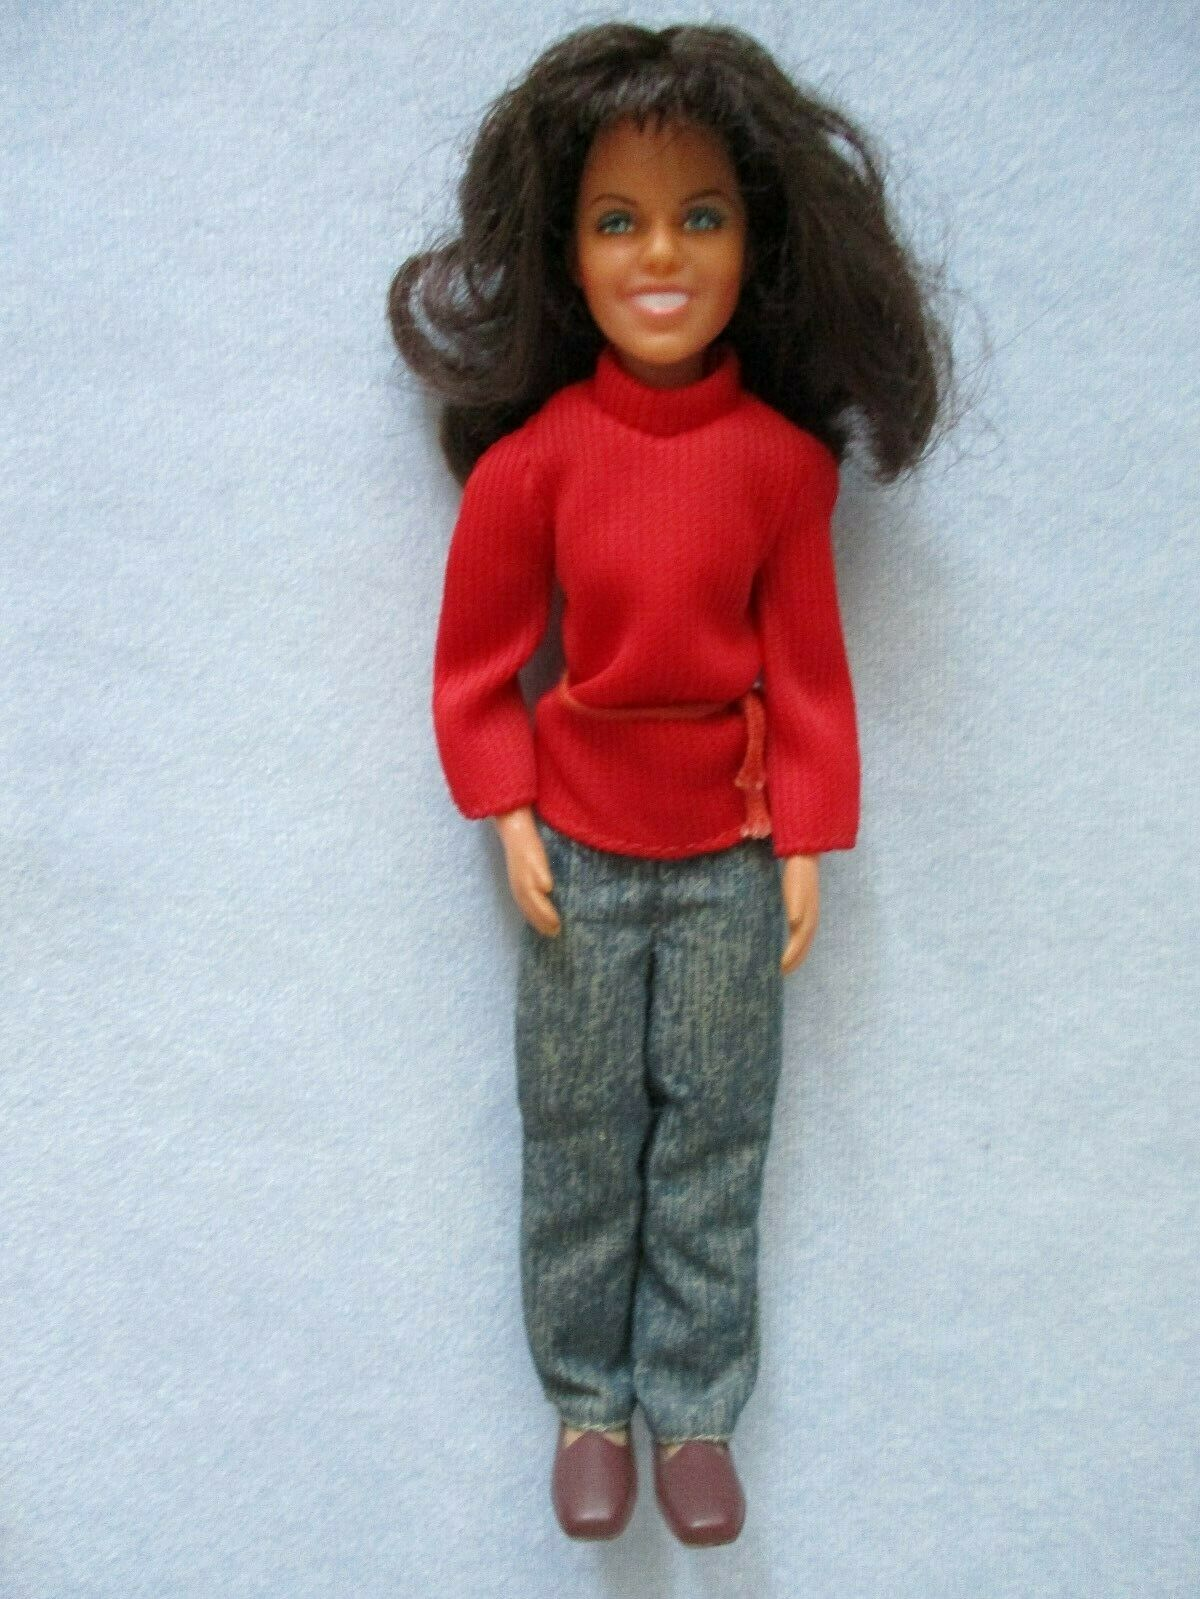 Mattel Vintage Mindy Doll from the TV Show Mork and Mindy 1979